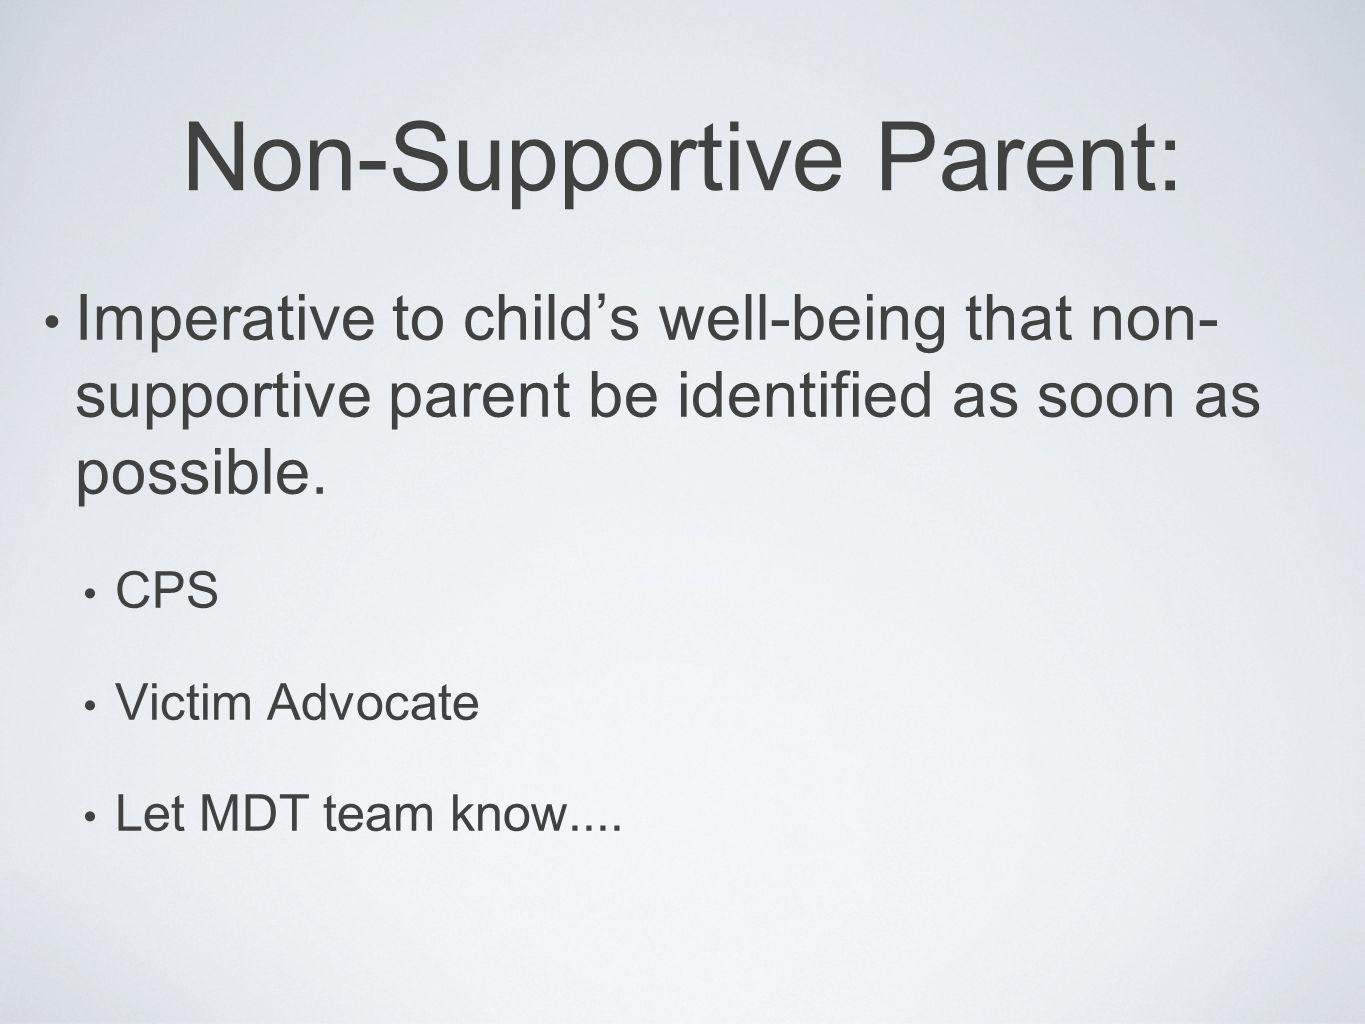 Non-Supportive Parent: